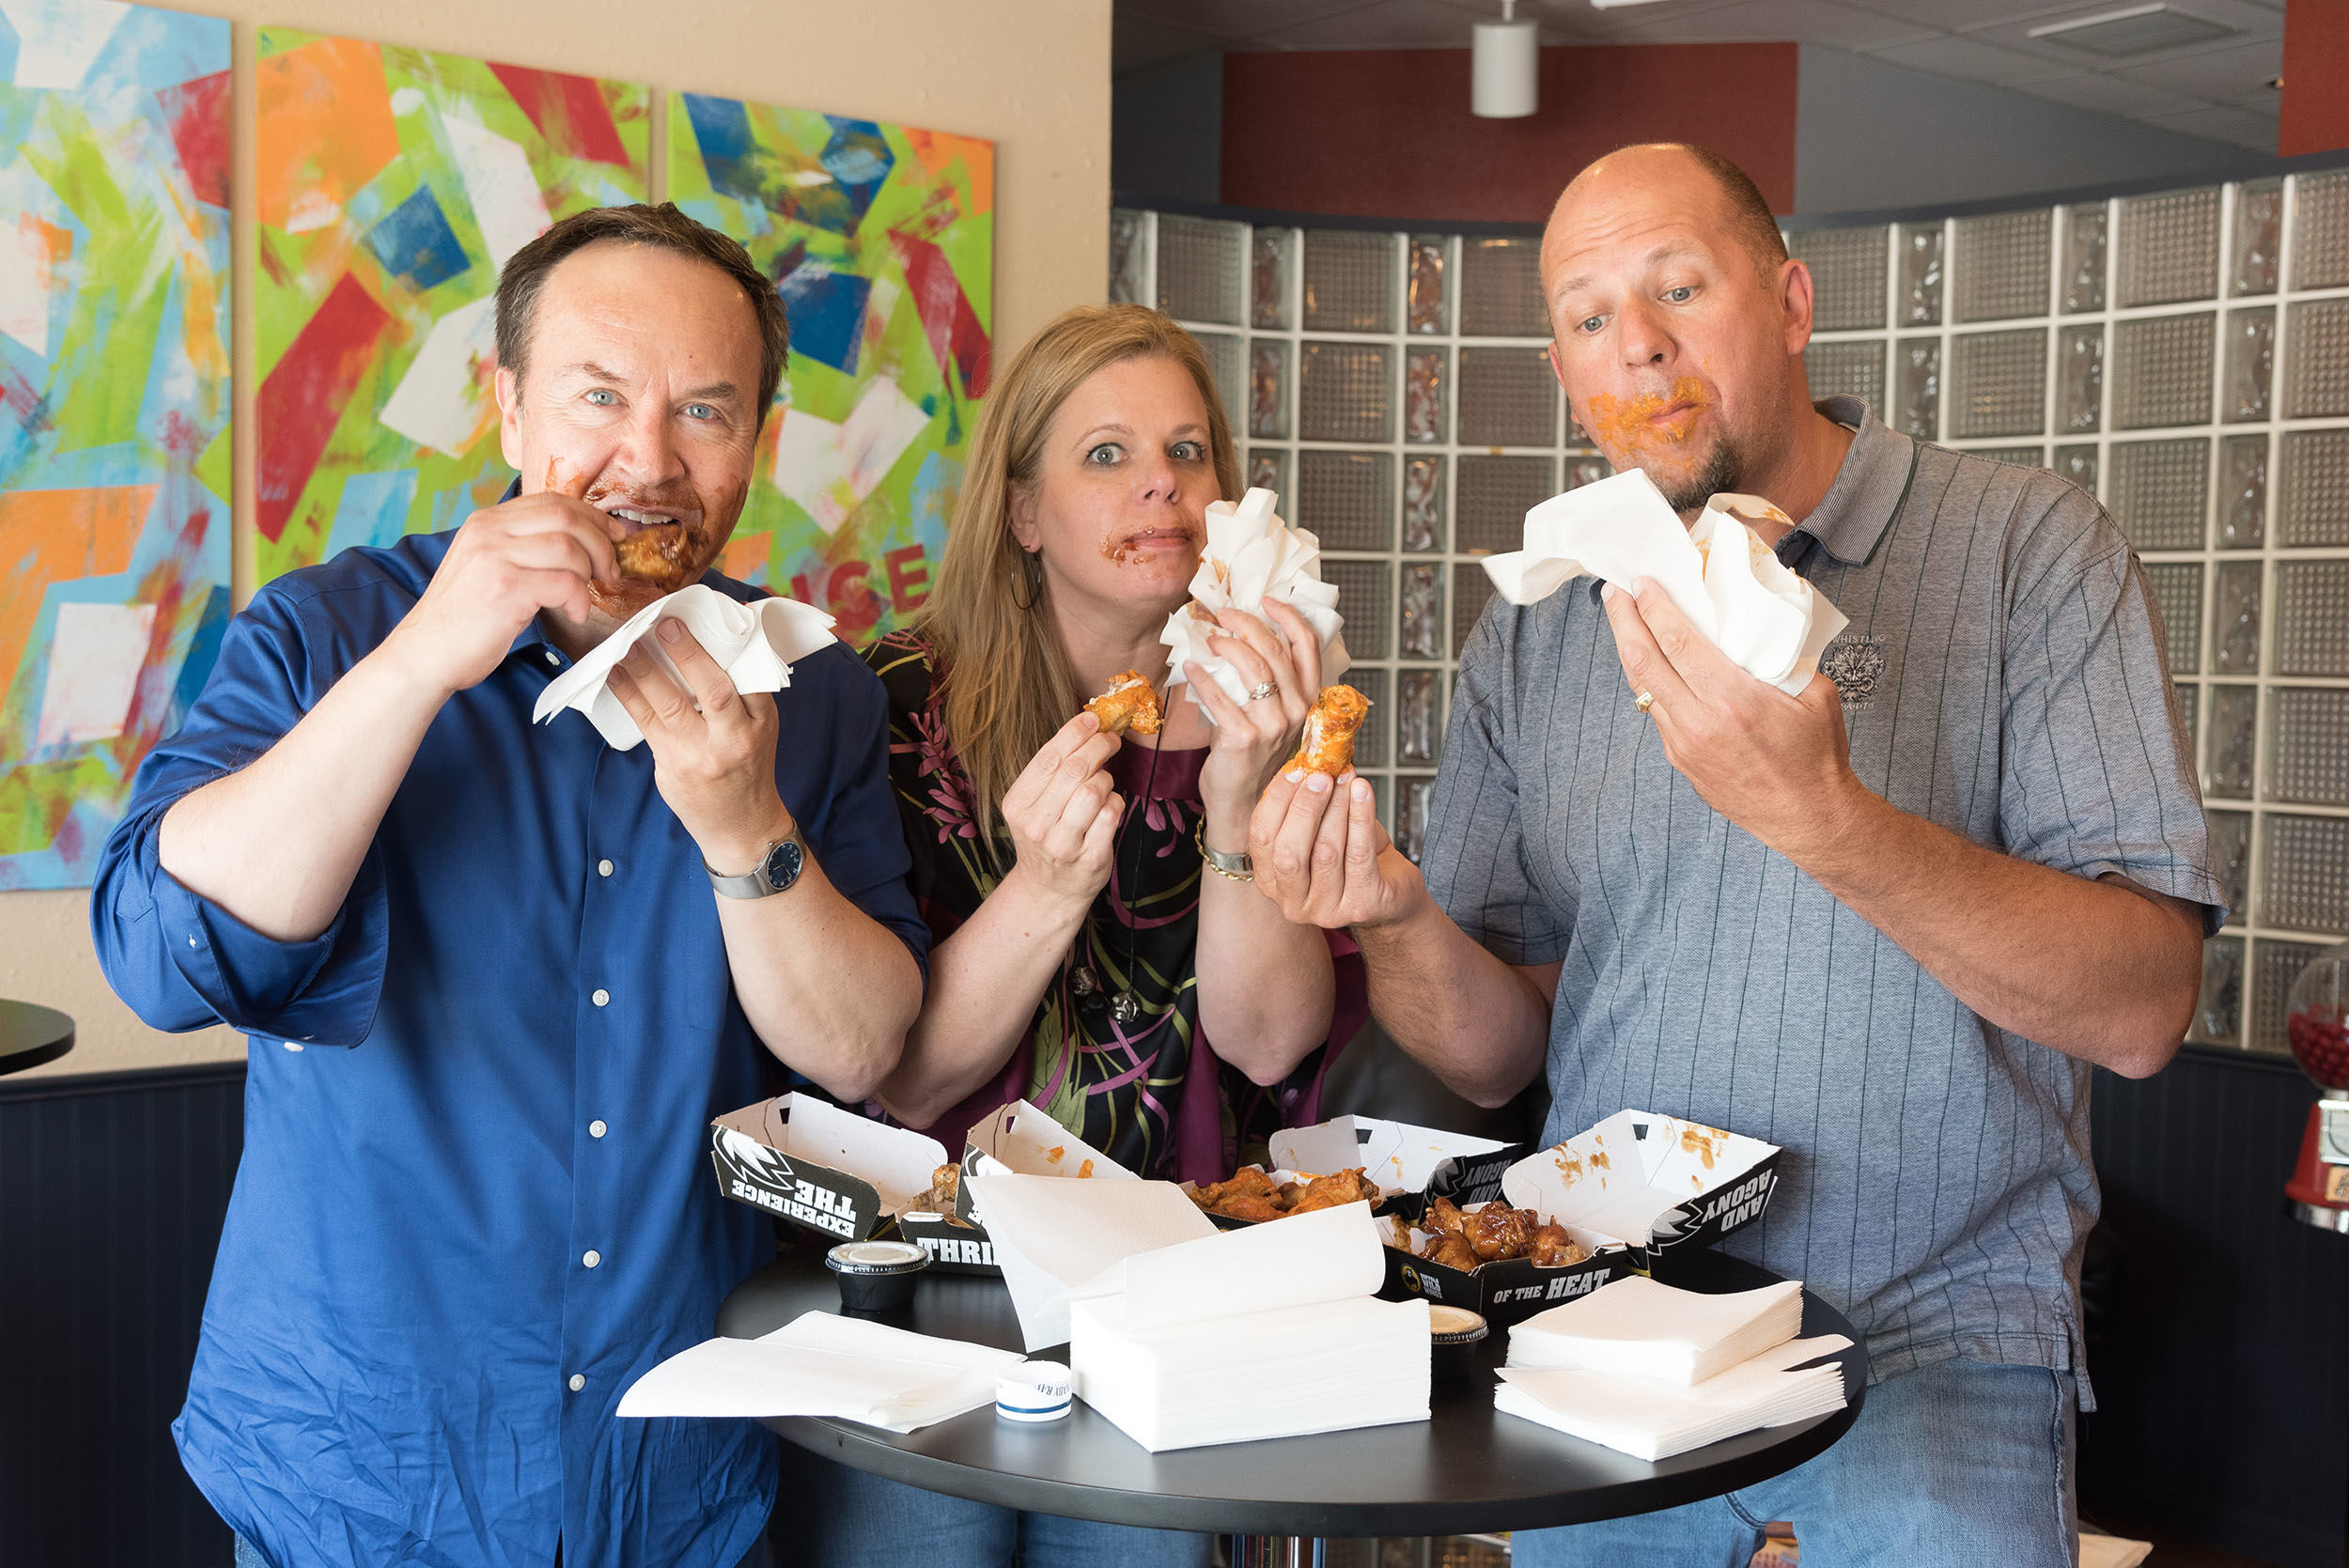 Portrait of group eating wings